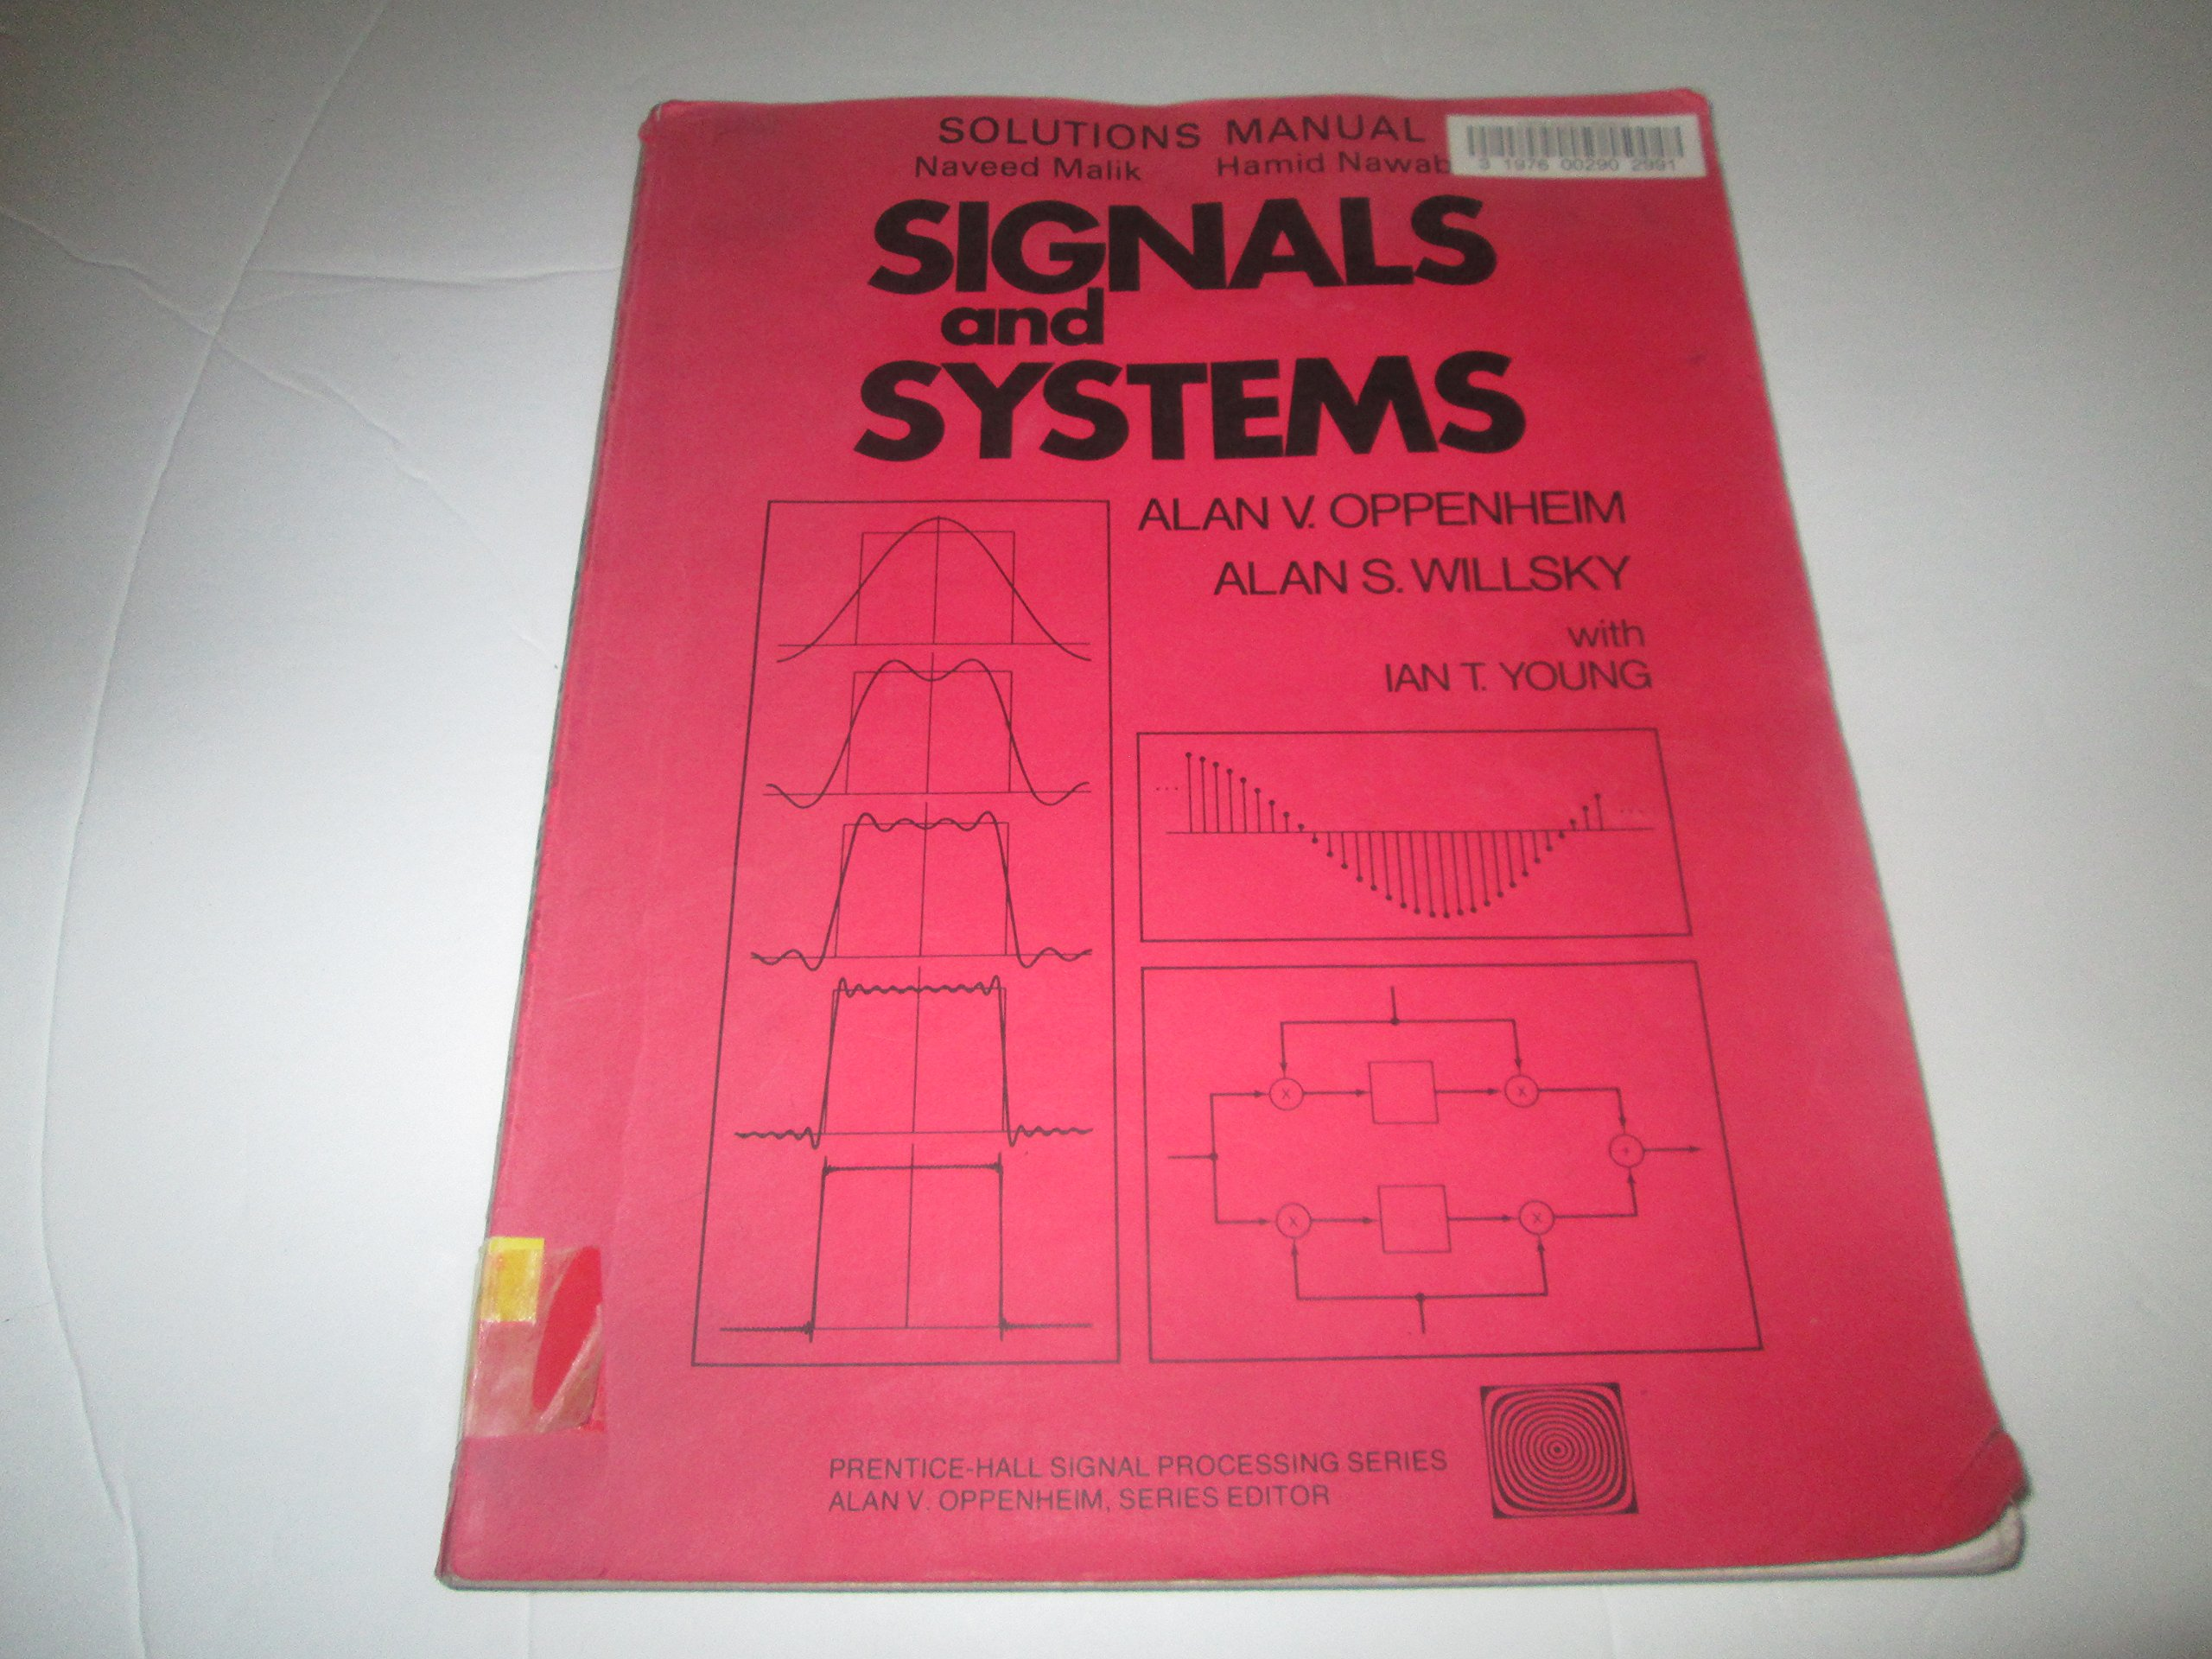 signals and systems solutions manual prentice hall naveed rh amazon com Student Solutions Manual Principles of Manufacturing Processes Metal Solutions Manual